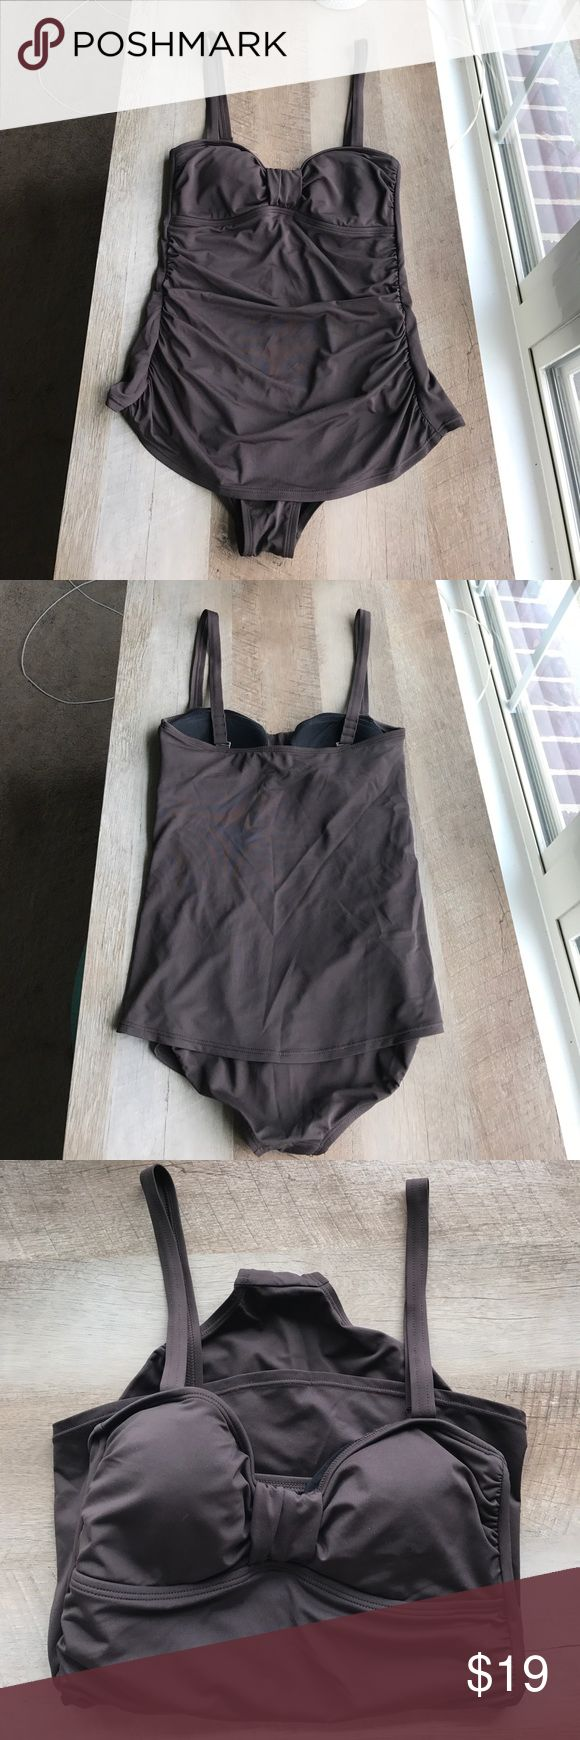 A.N.A. Brown One Piece Swimsuit with Skirt Size 8 Very flattering dark brown fully lined Retro style one pierce swimsuit with removable straps and separate swim Skirt (can be worn over one piece or with bikini top, built in panties with skirt). Size 8 but fits 6-8. a.n.a Swim One Pieces